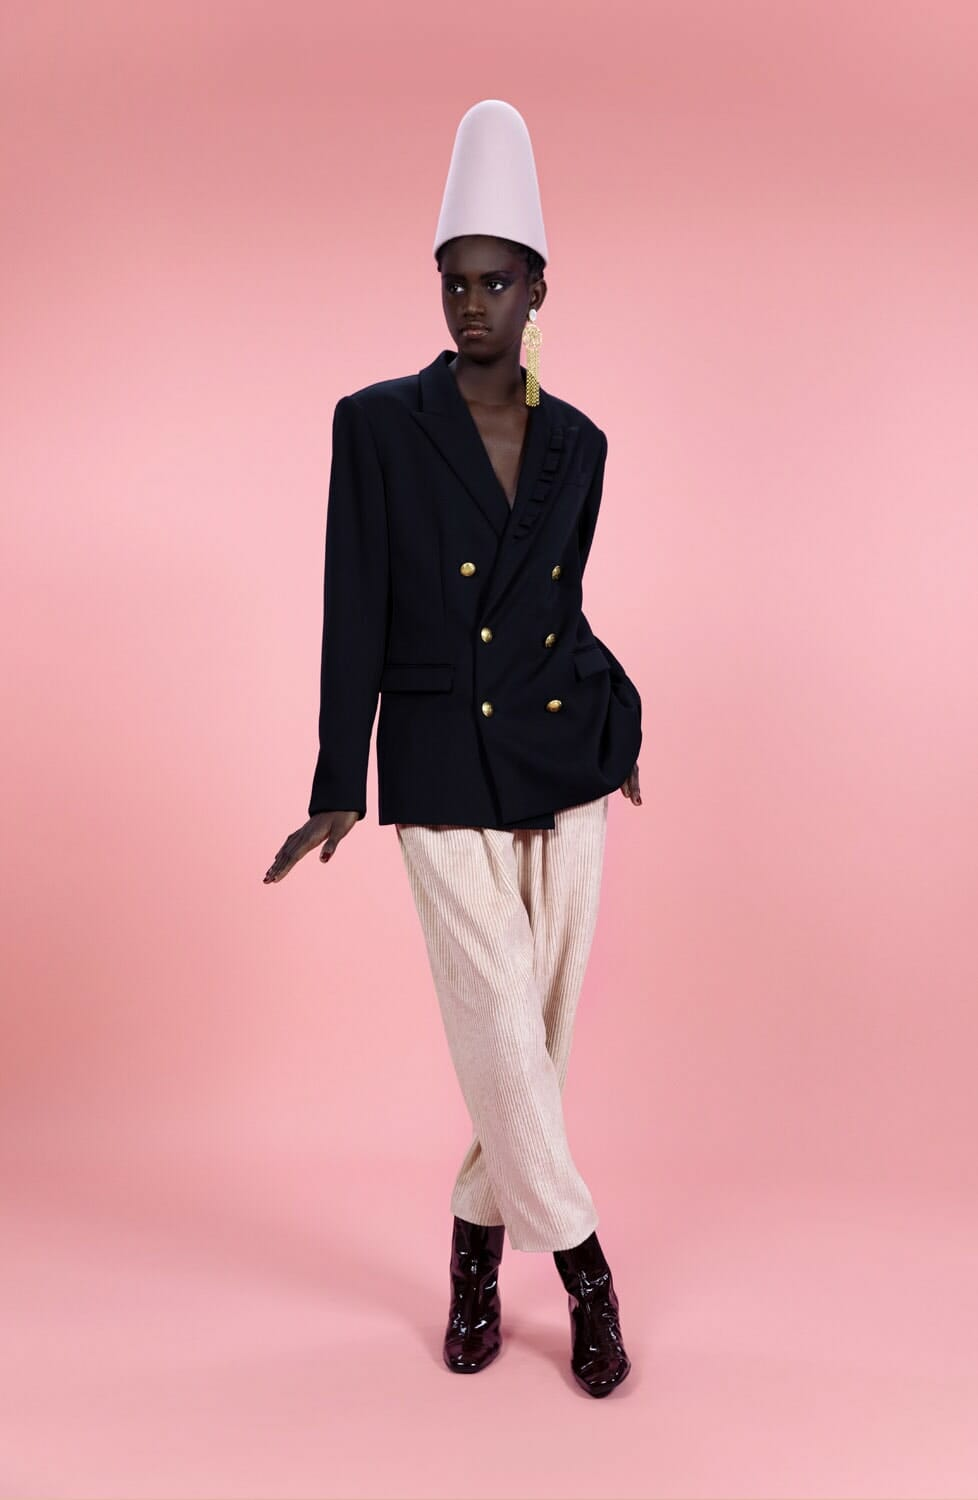 Prune Goldschmidt Fall Winter 2021-2022 Paris. RUNWAY MAGAZINE ® Collections. RUNWAY NOW / RUNWAY NEW